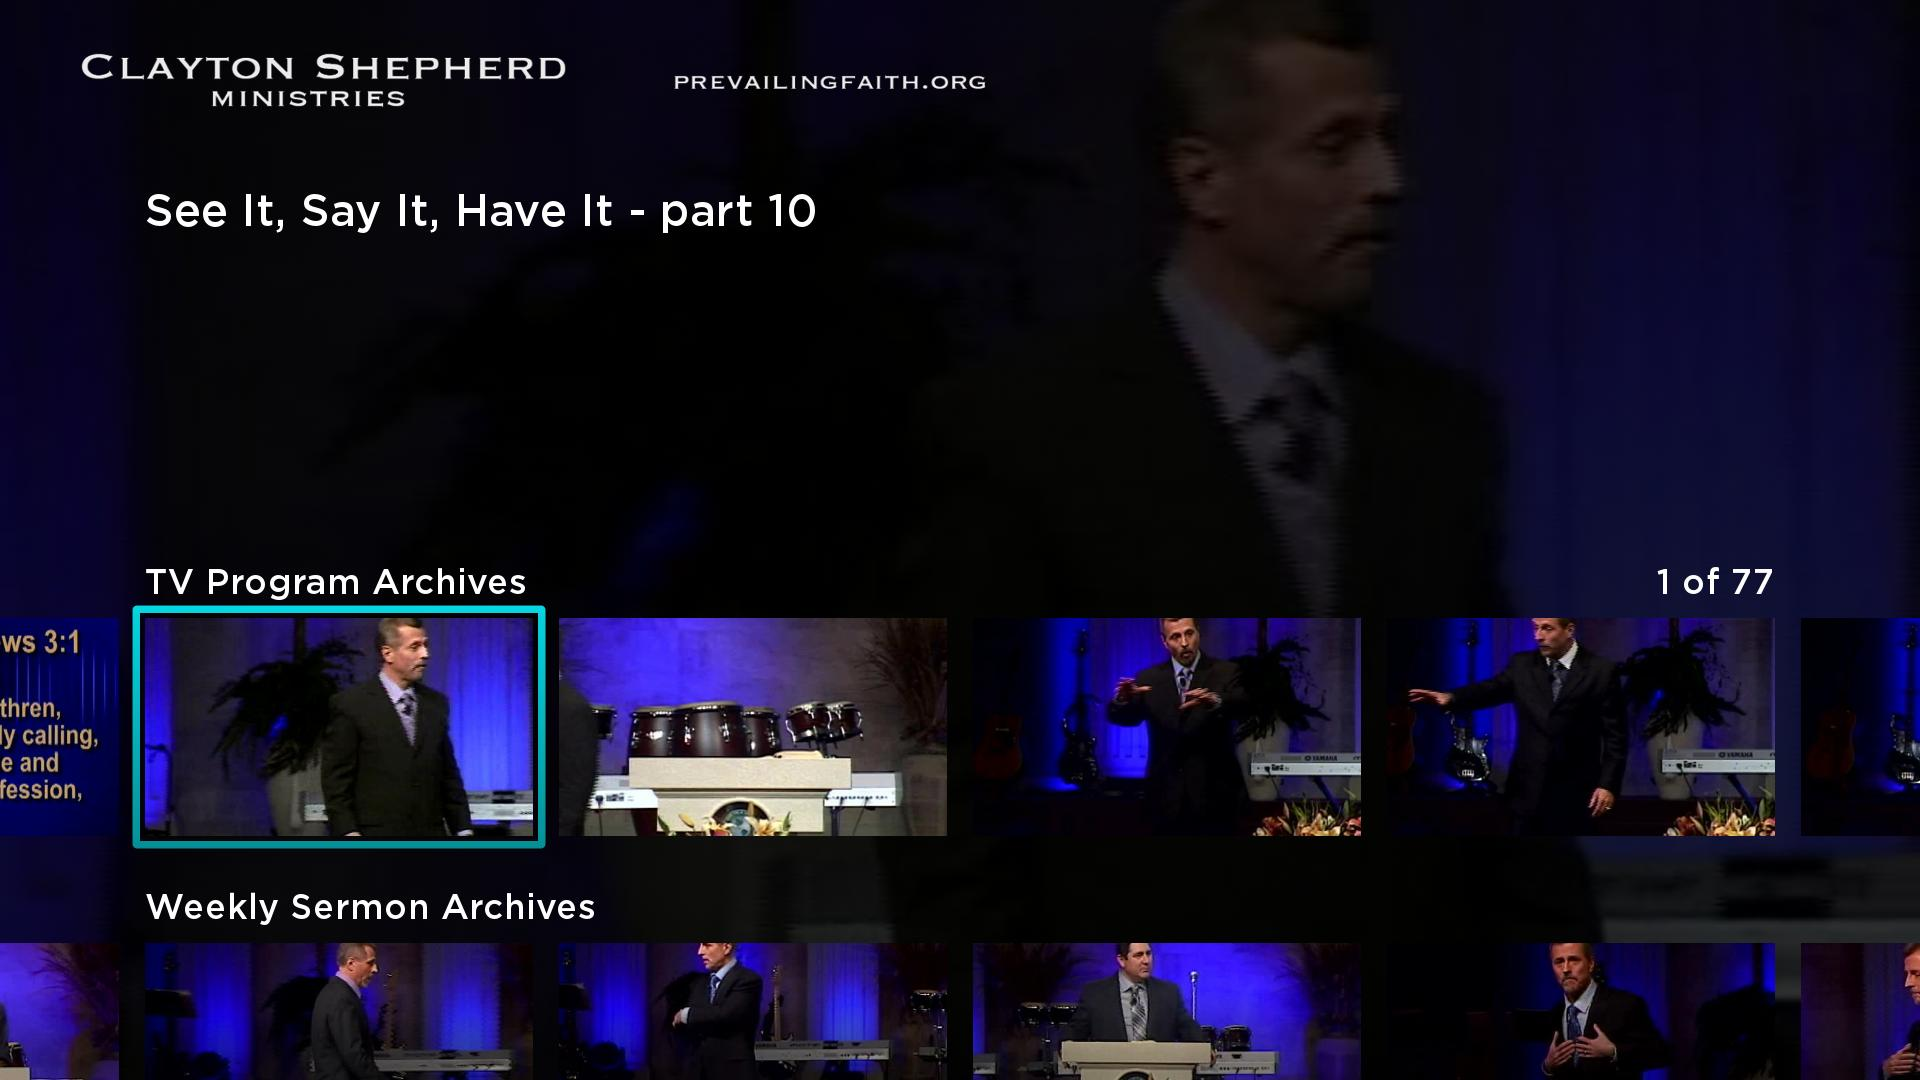 Clayton Shepherd Ministries Screenshot 001